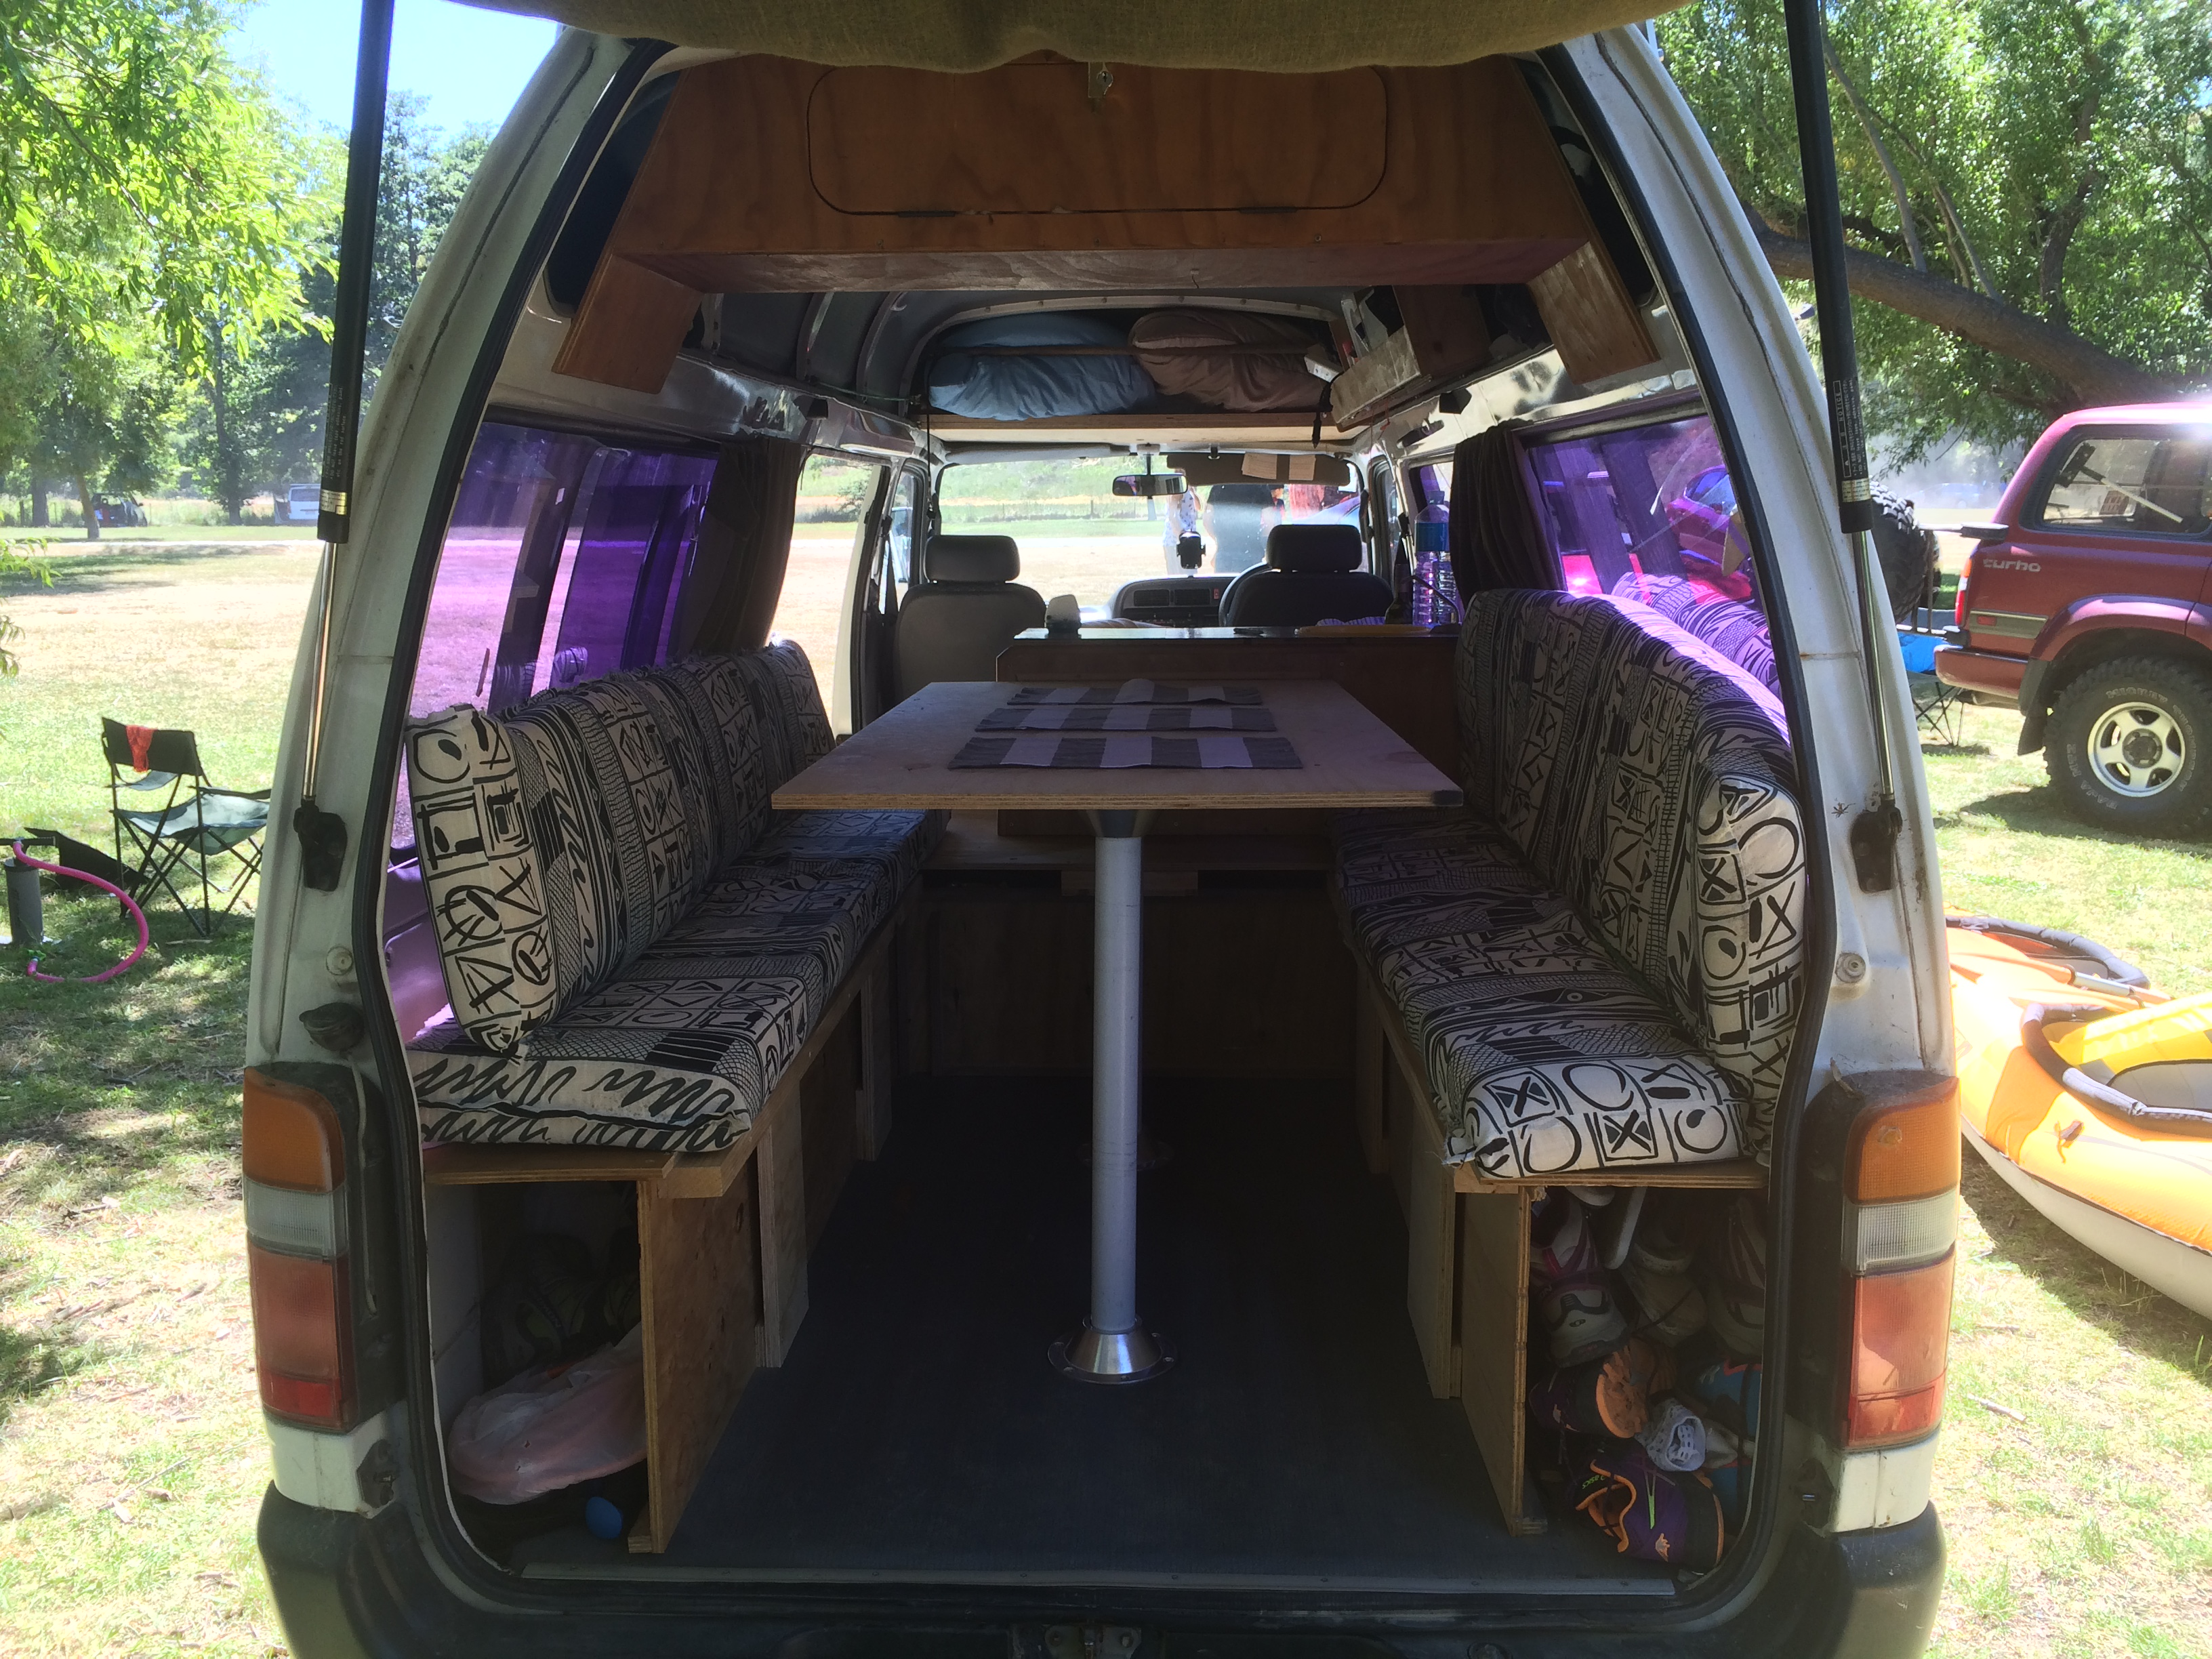 Souvent Toyota hiace campervan 1998 self contained - Frogs-in-NZ PZ19